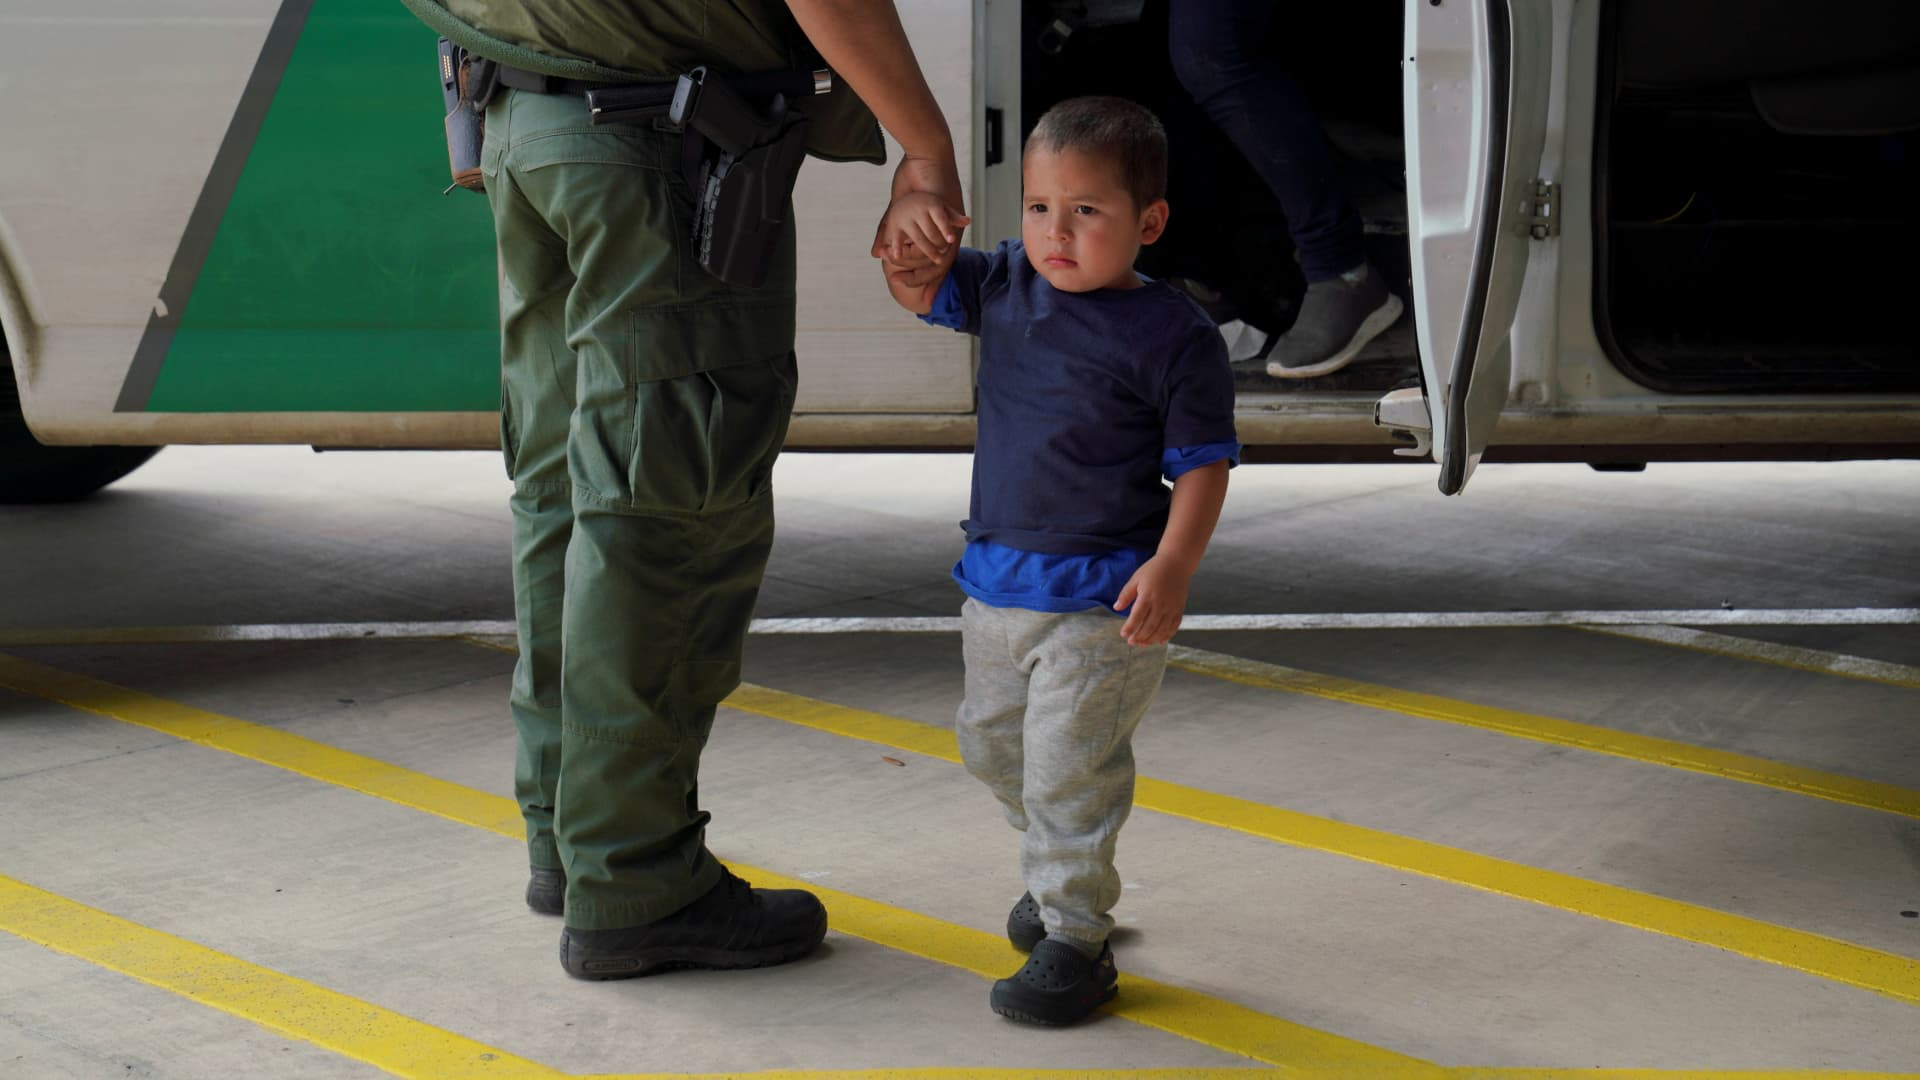 A Border Patrol agent holds an asylum-seeking child as his mother gets off the vehicle at the bus station after being processed through immigration in Brownsville, Texas, U.S. March 15, 2021.